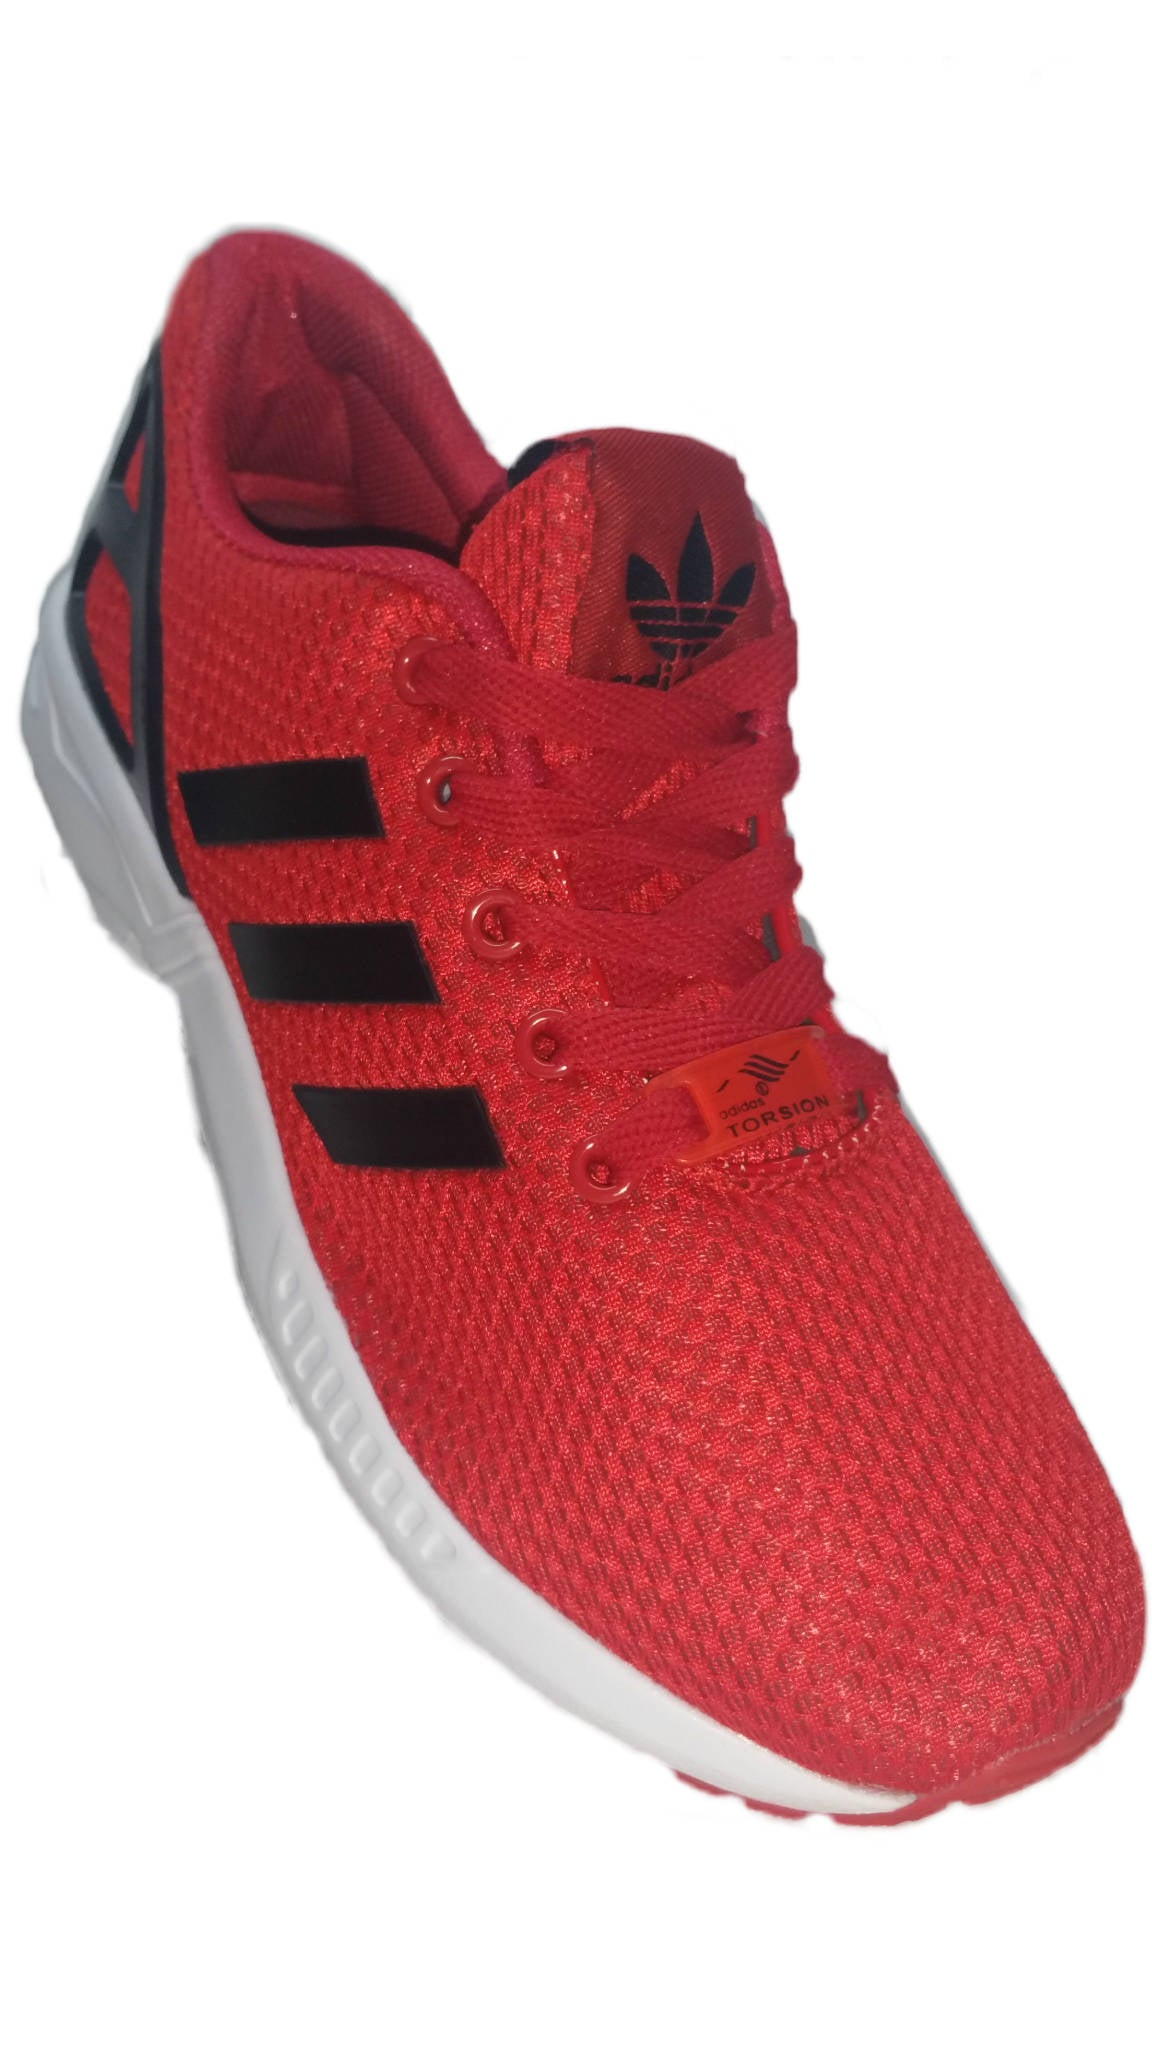 online store 6caa0 7b02a Adidas Torsion - Red